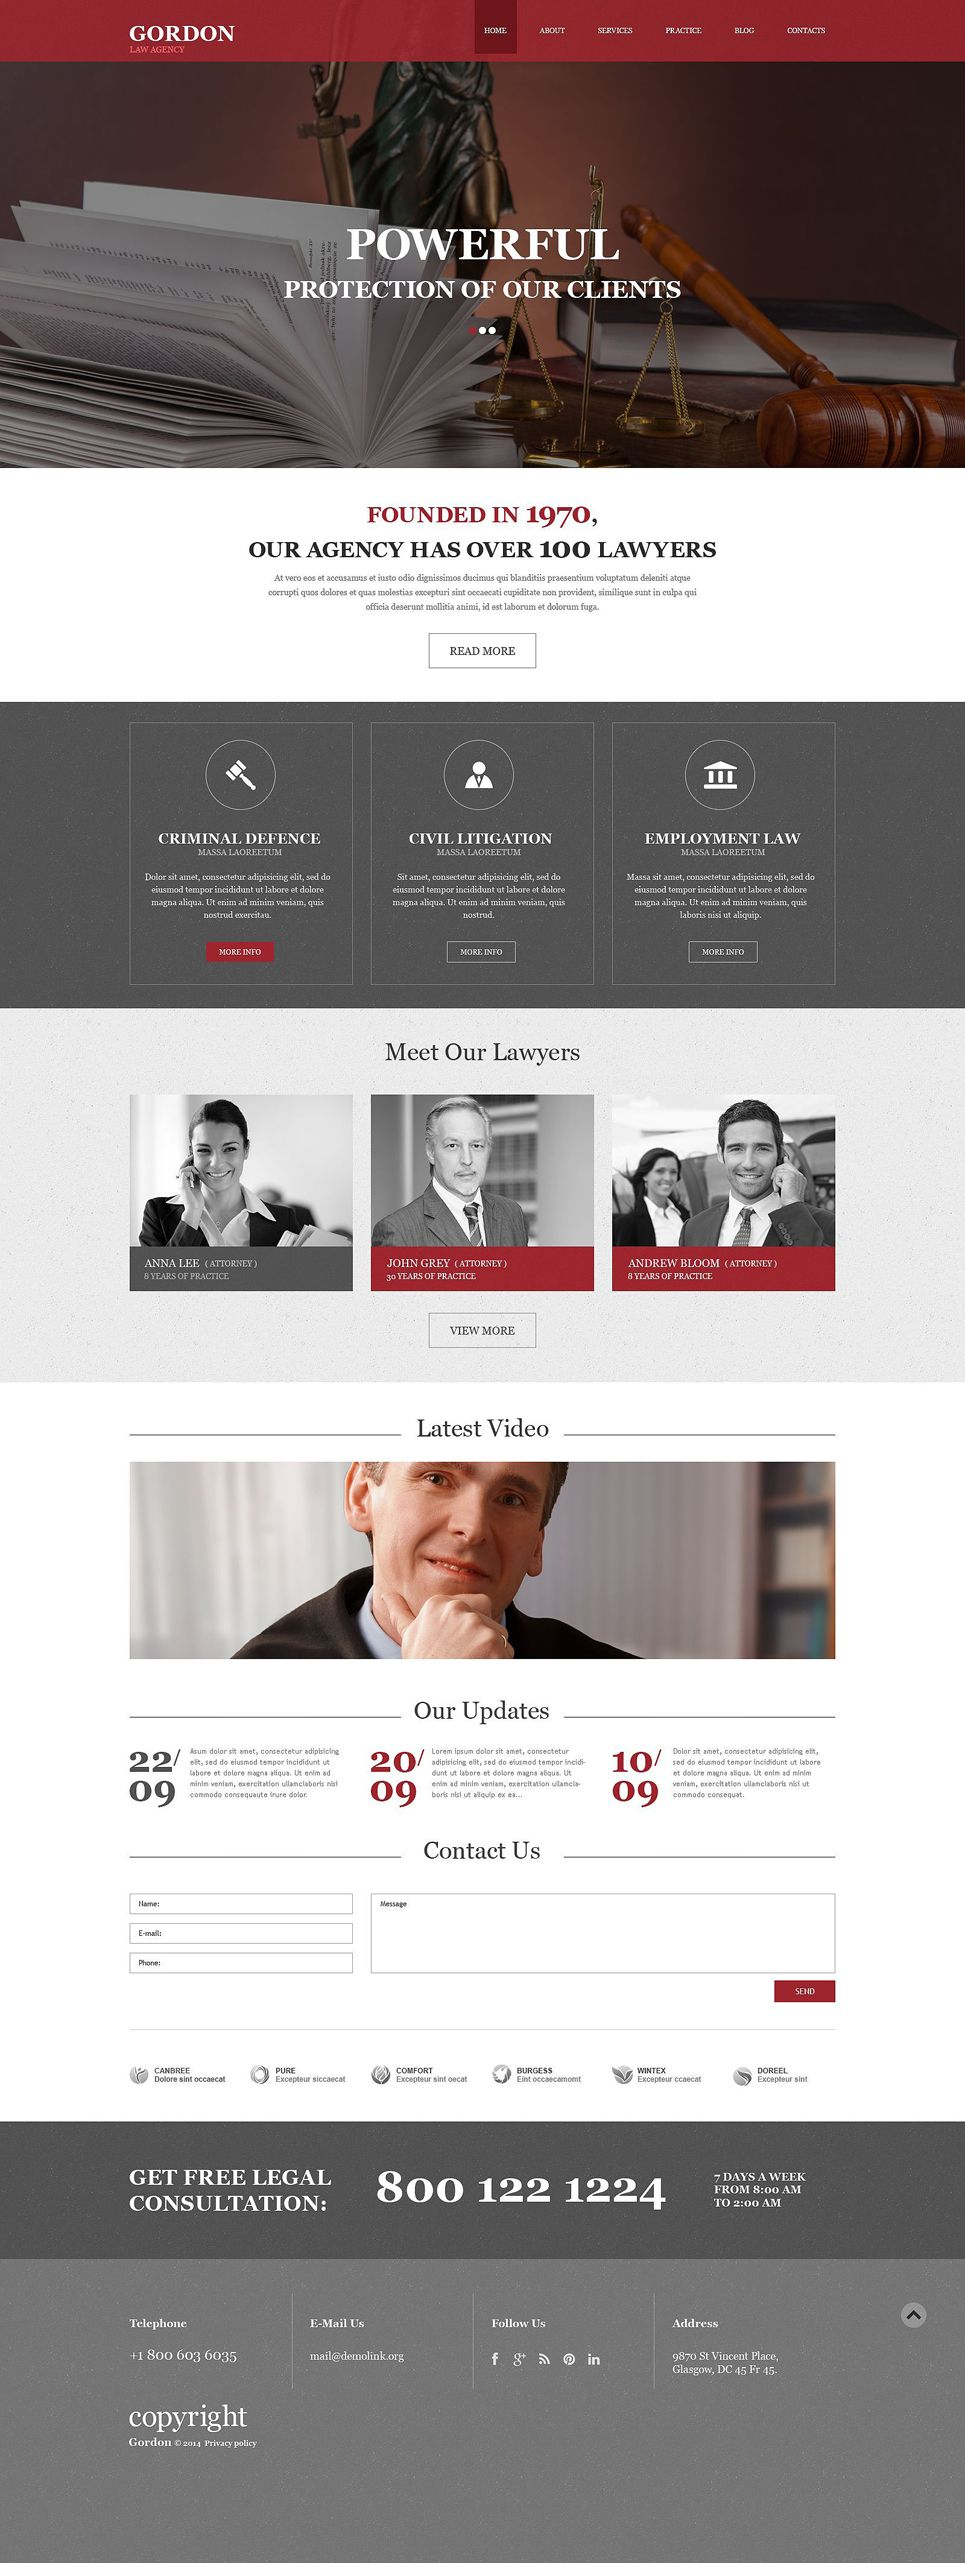 Law Firm Muse Template 52048 Law Firm Website Design Law Firm Website Law Firm